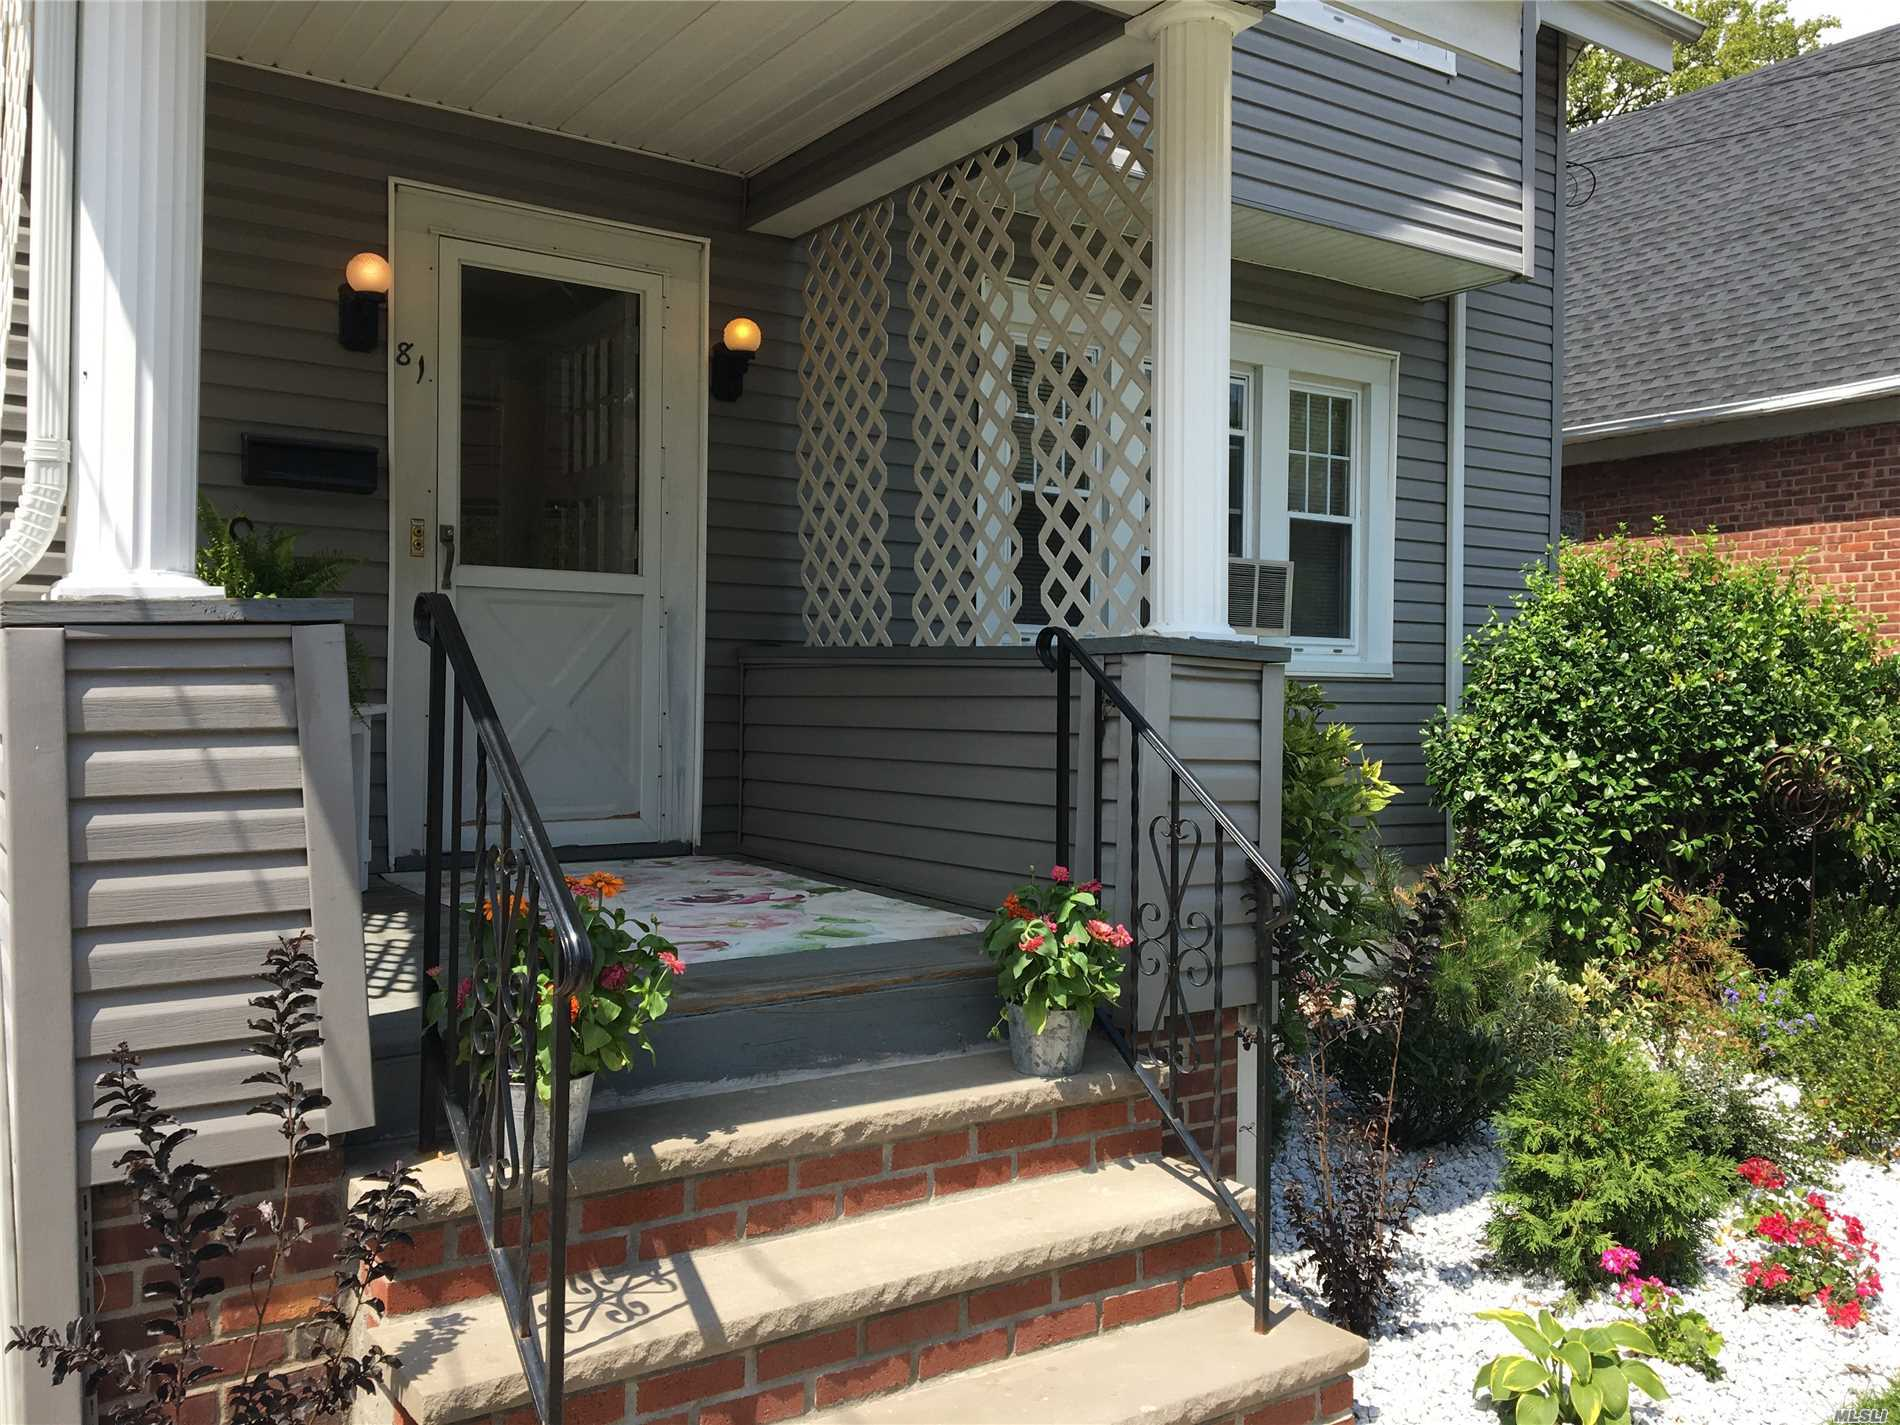 1st Floor Of Legal 2 Family, Updated 2Br Apartment With New Kitchen And Bath. Driveway, Garage , Yard All Included. Screened In Porch, New Floors, Freshly Painted. Basement With Laundry Room